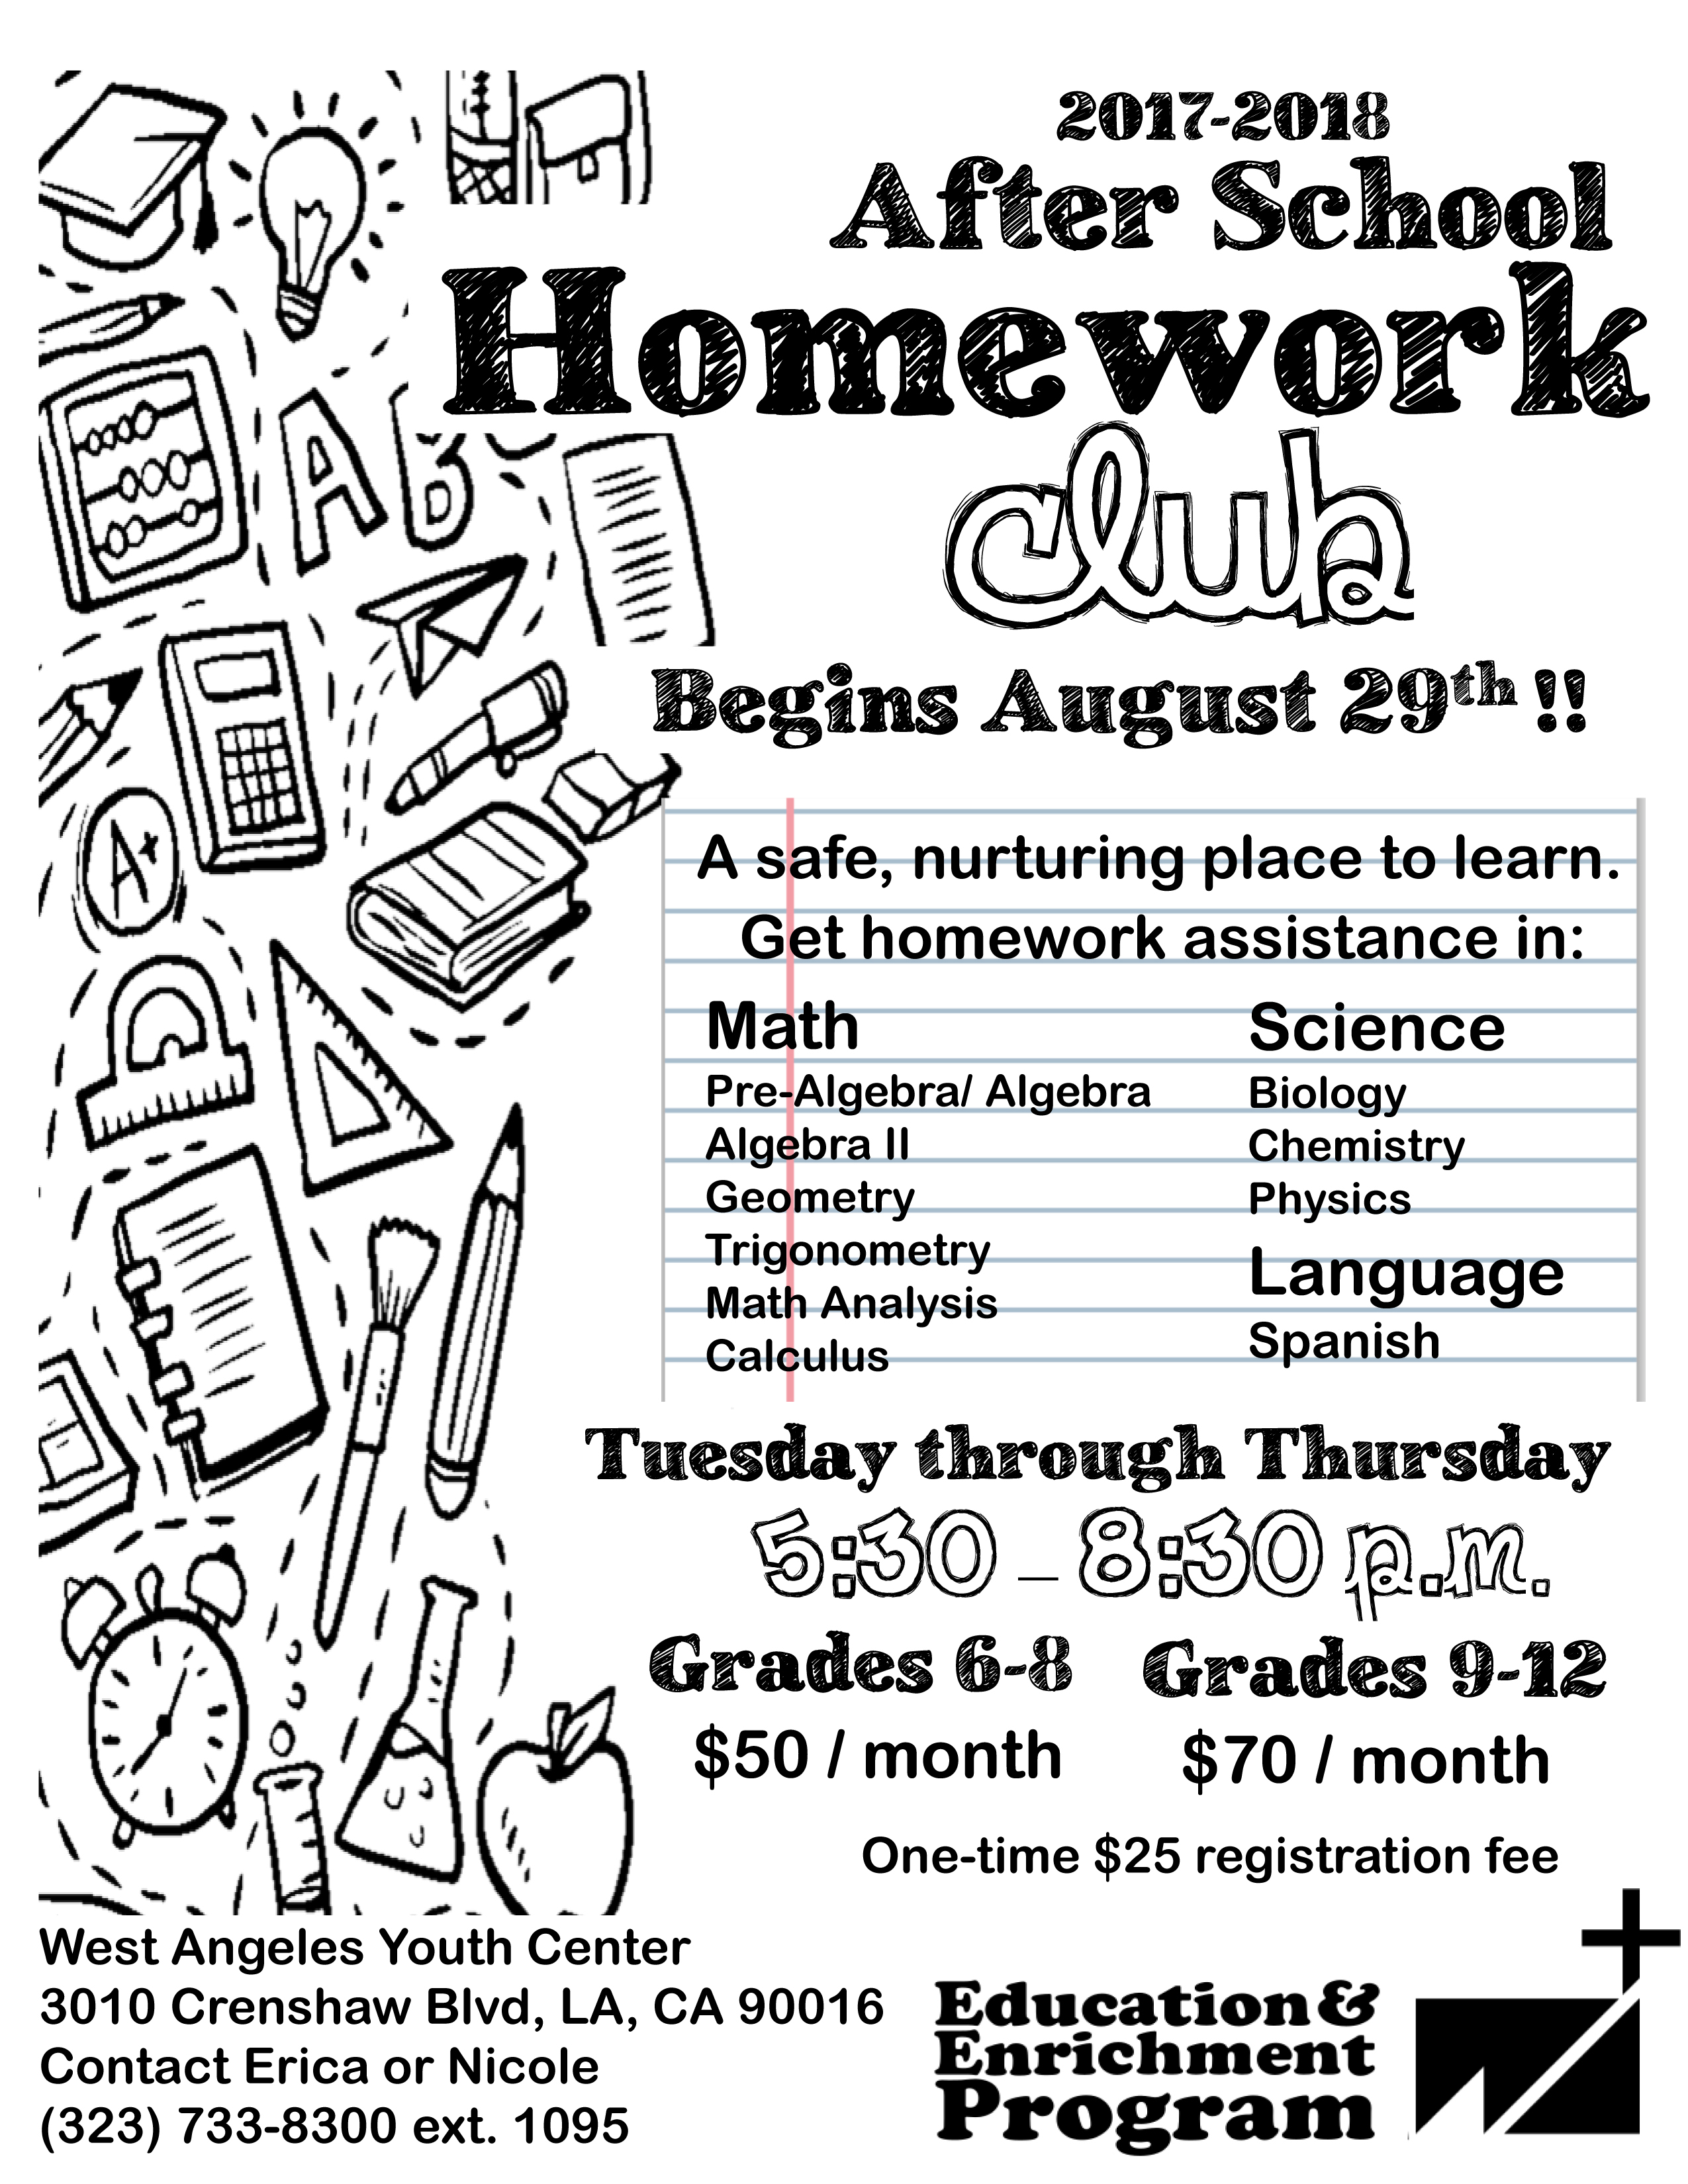 Afterschool Homework Help